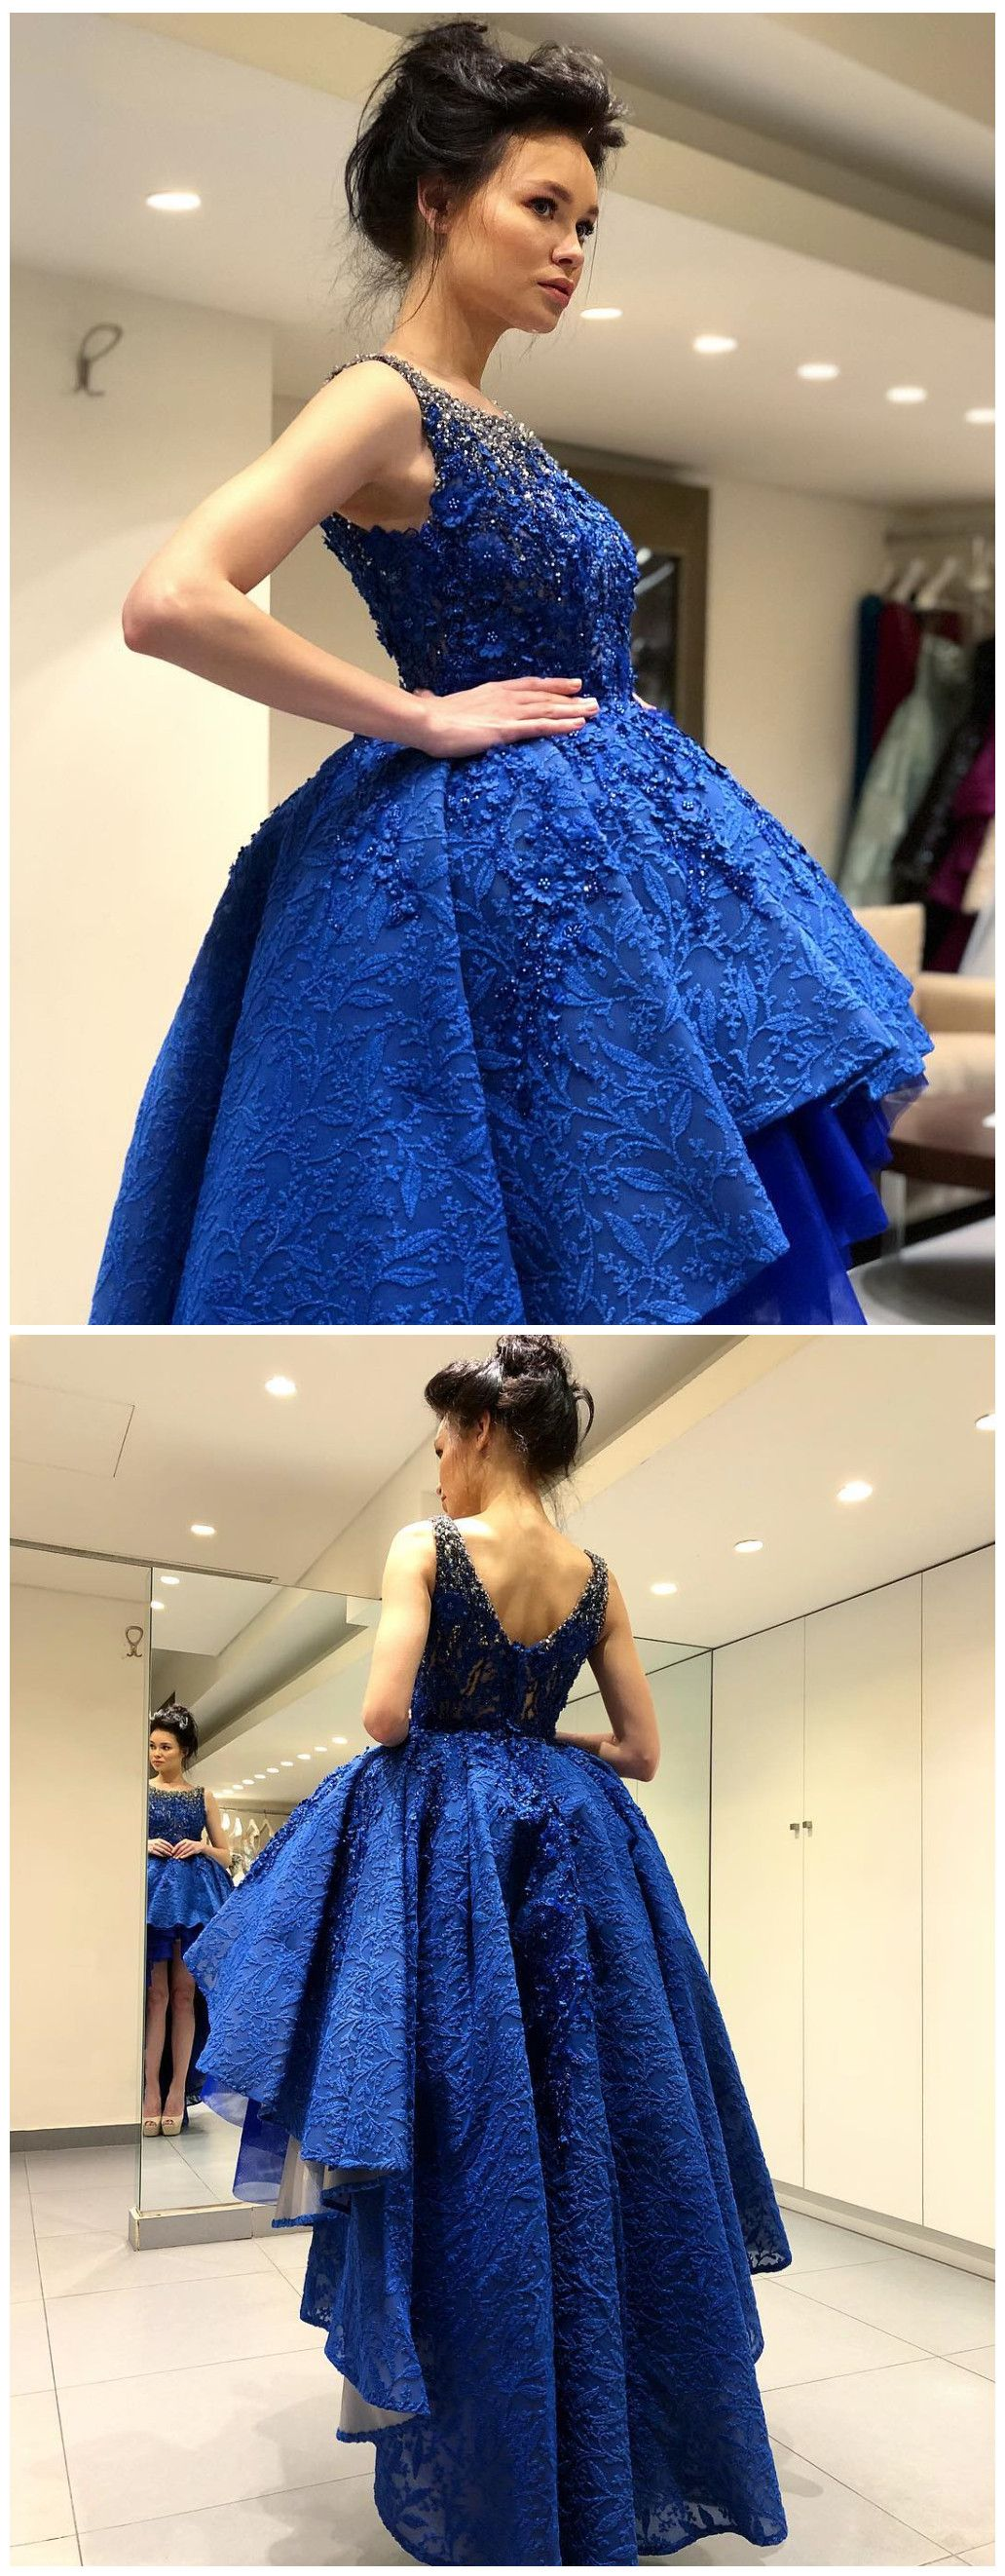 Aline scoop high low prom dress with lace royal blue asymmetrical